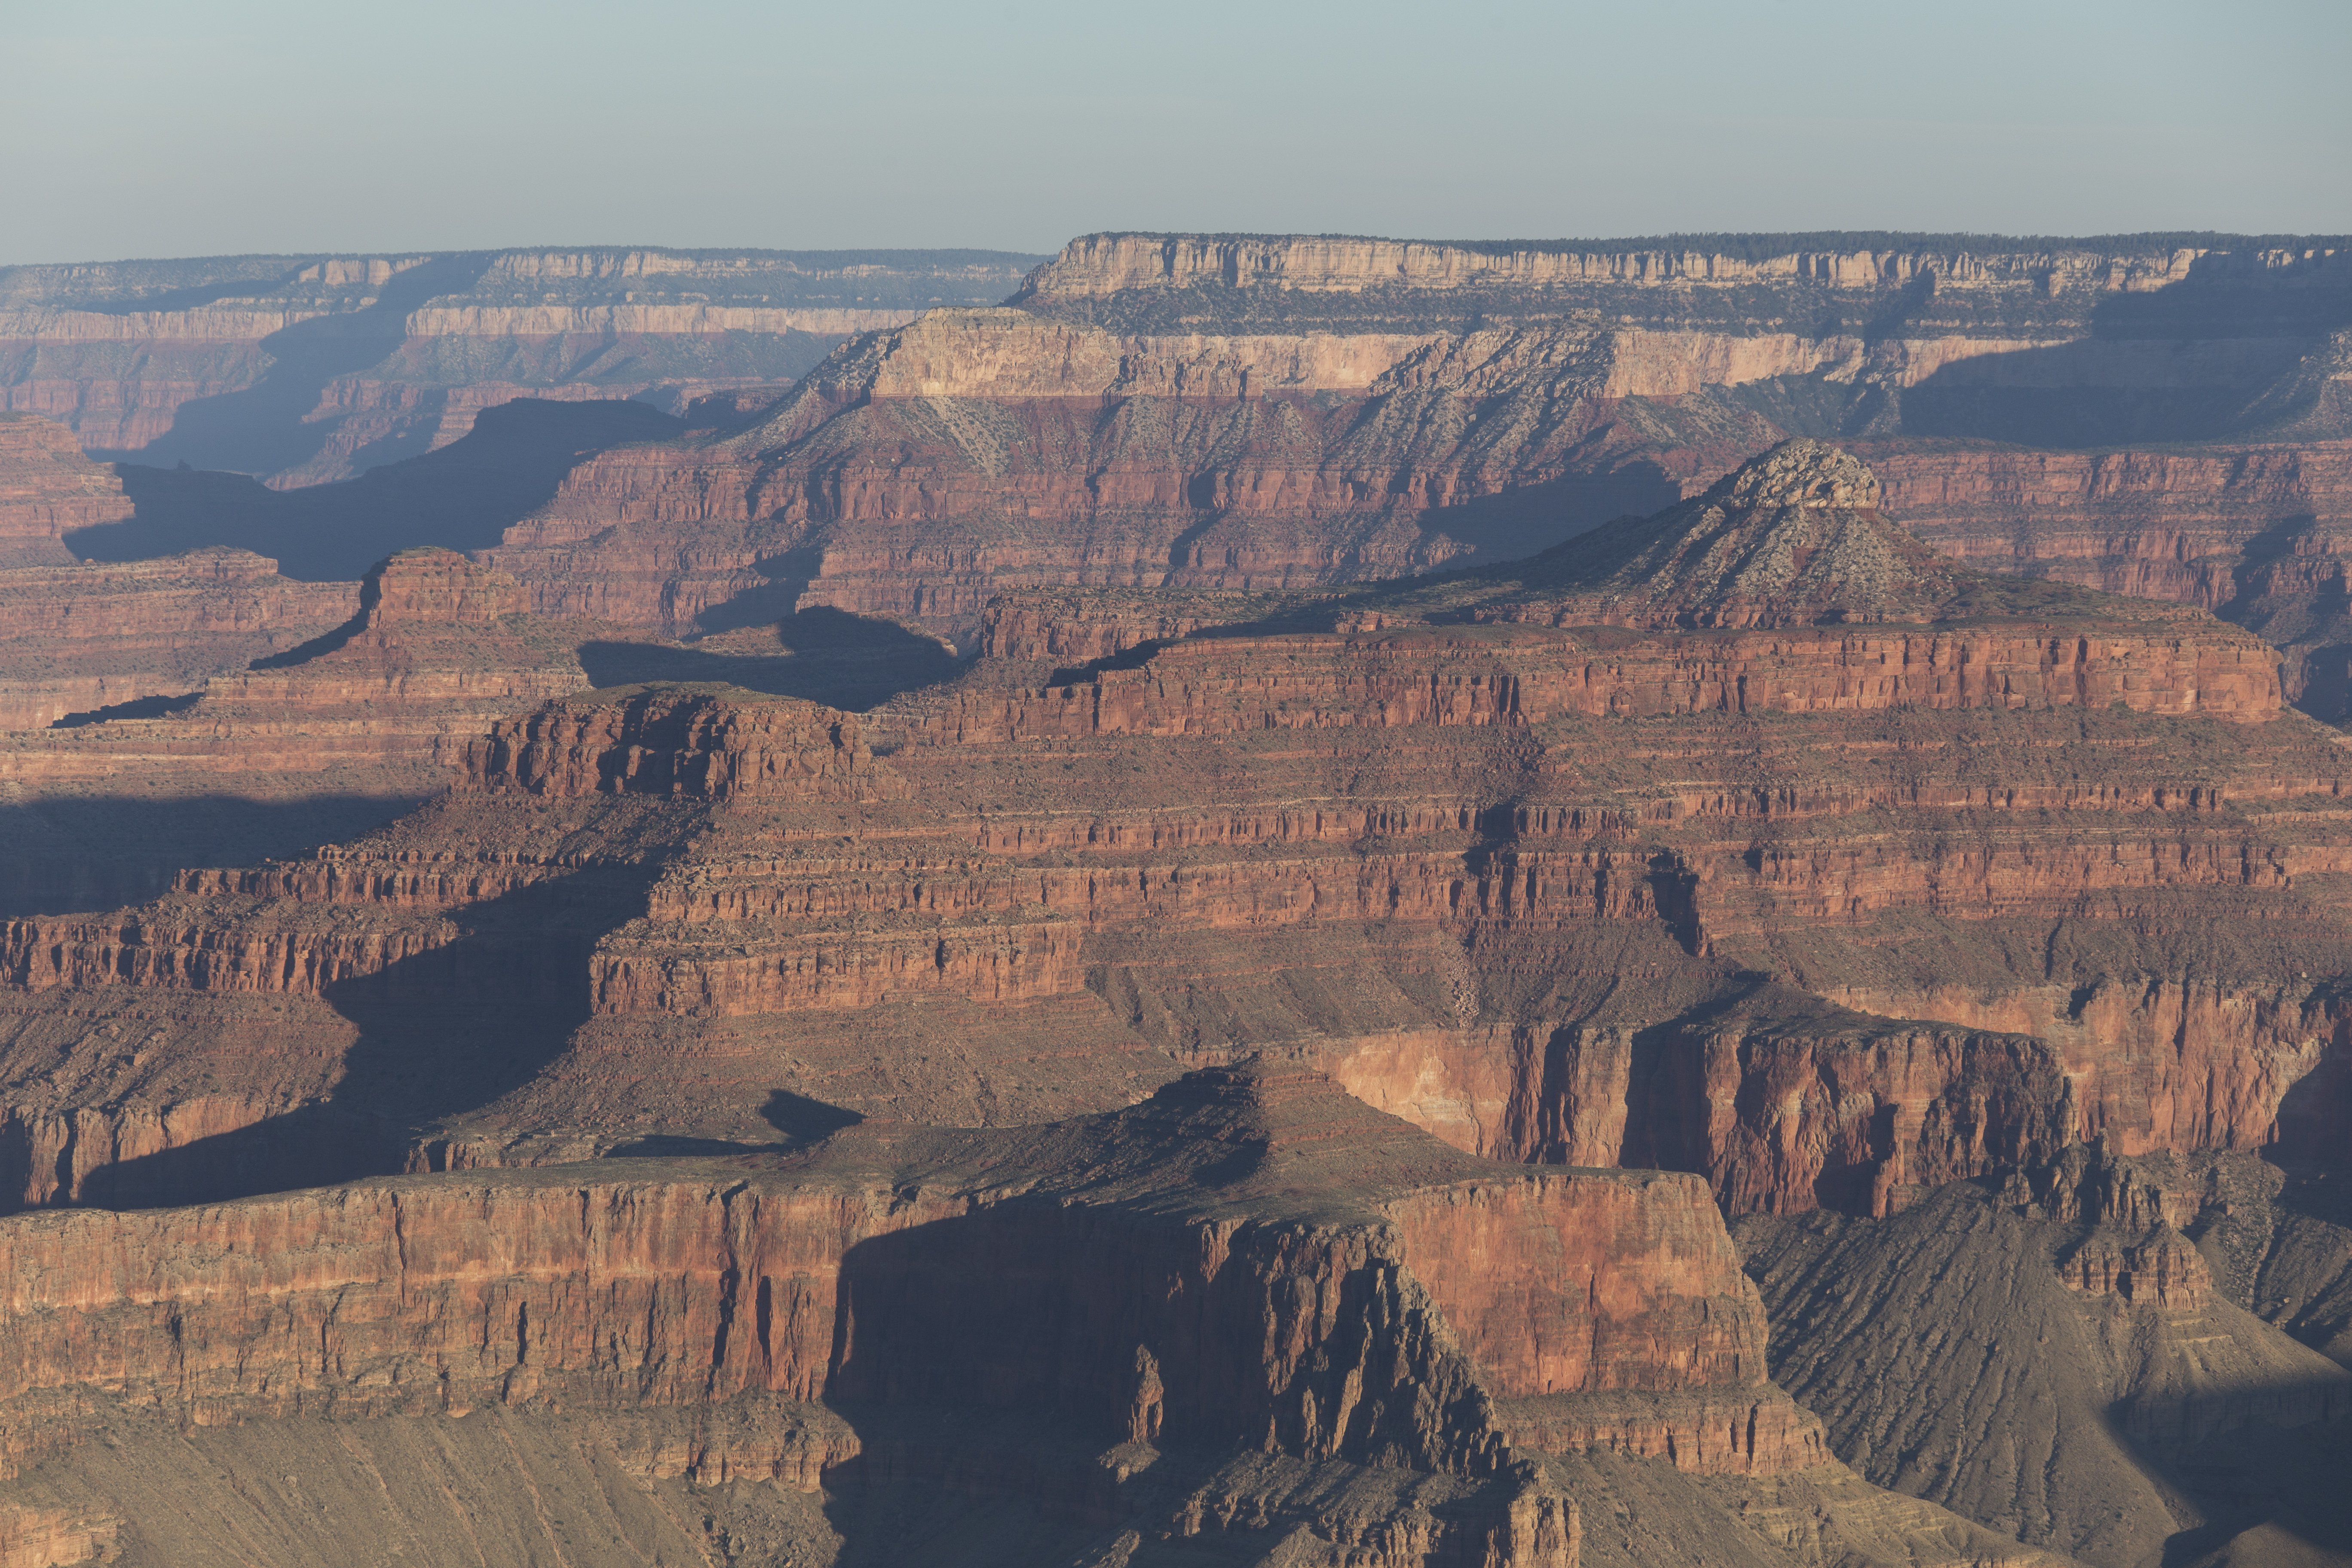 Grand Canyon Wallpapers Android Apps on Google Play